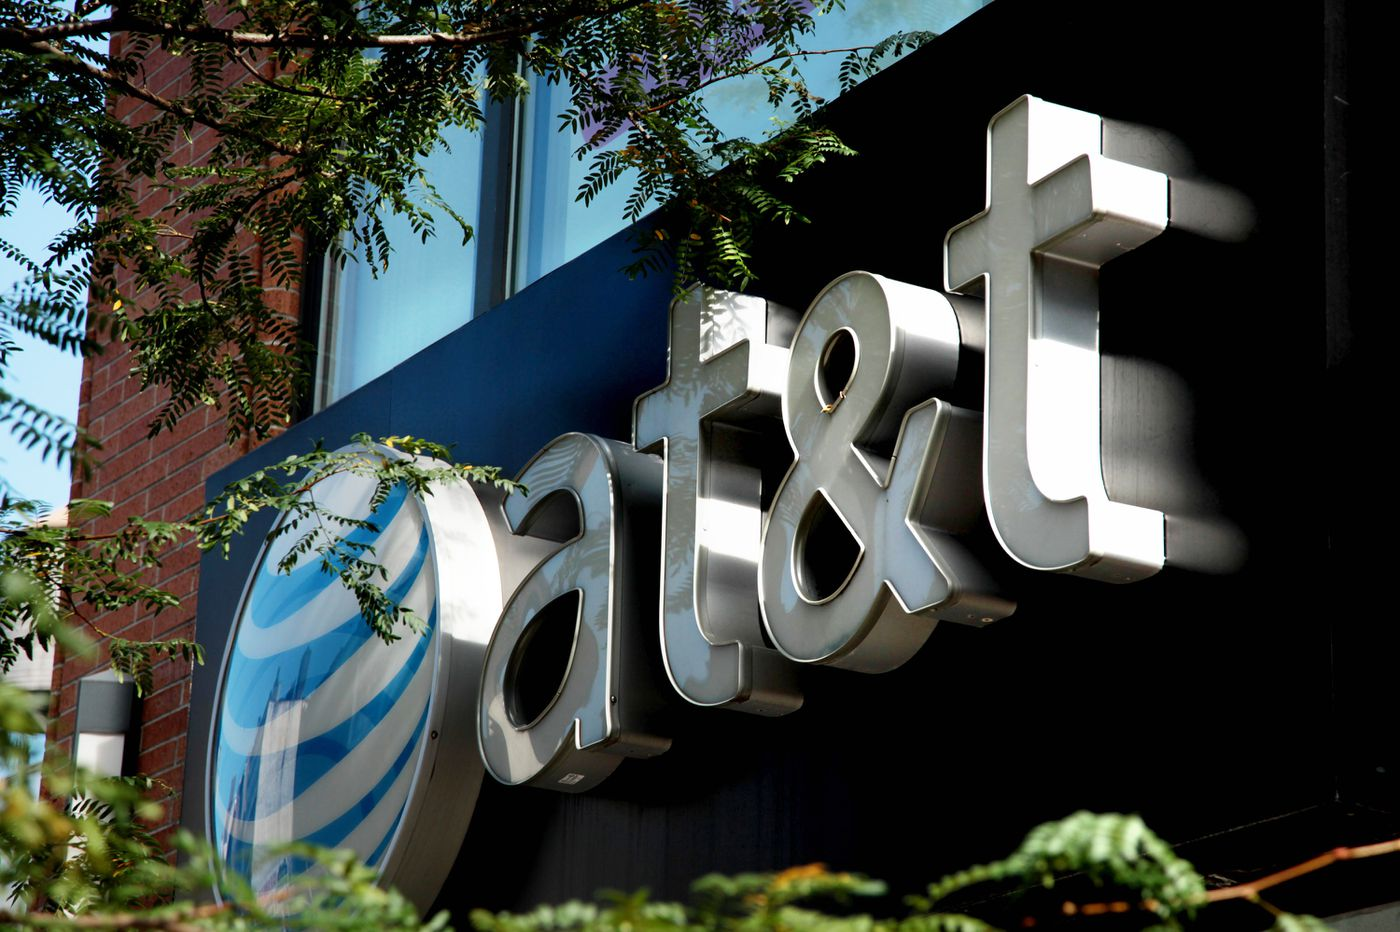 AT&T says it'll stop selling location data amid calls for federal investigation